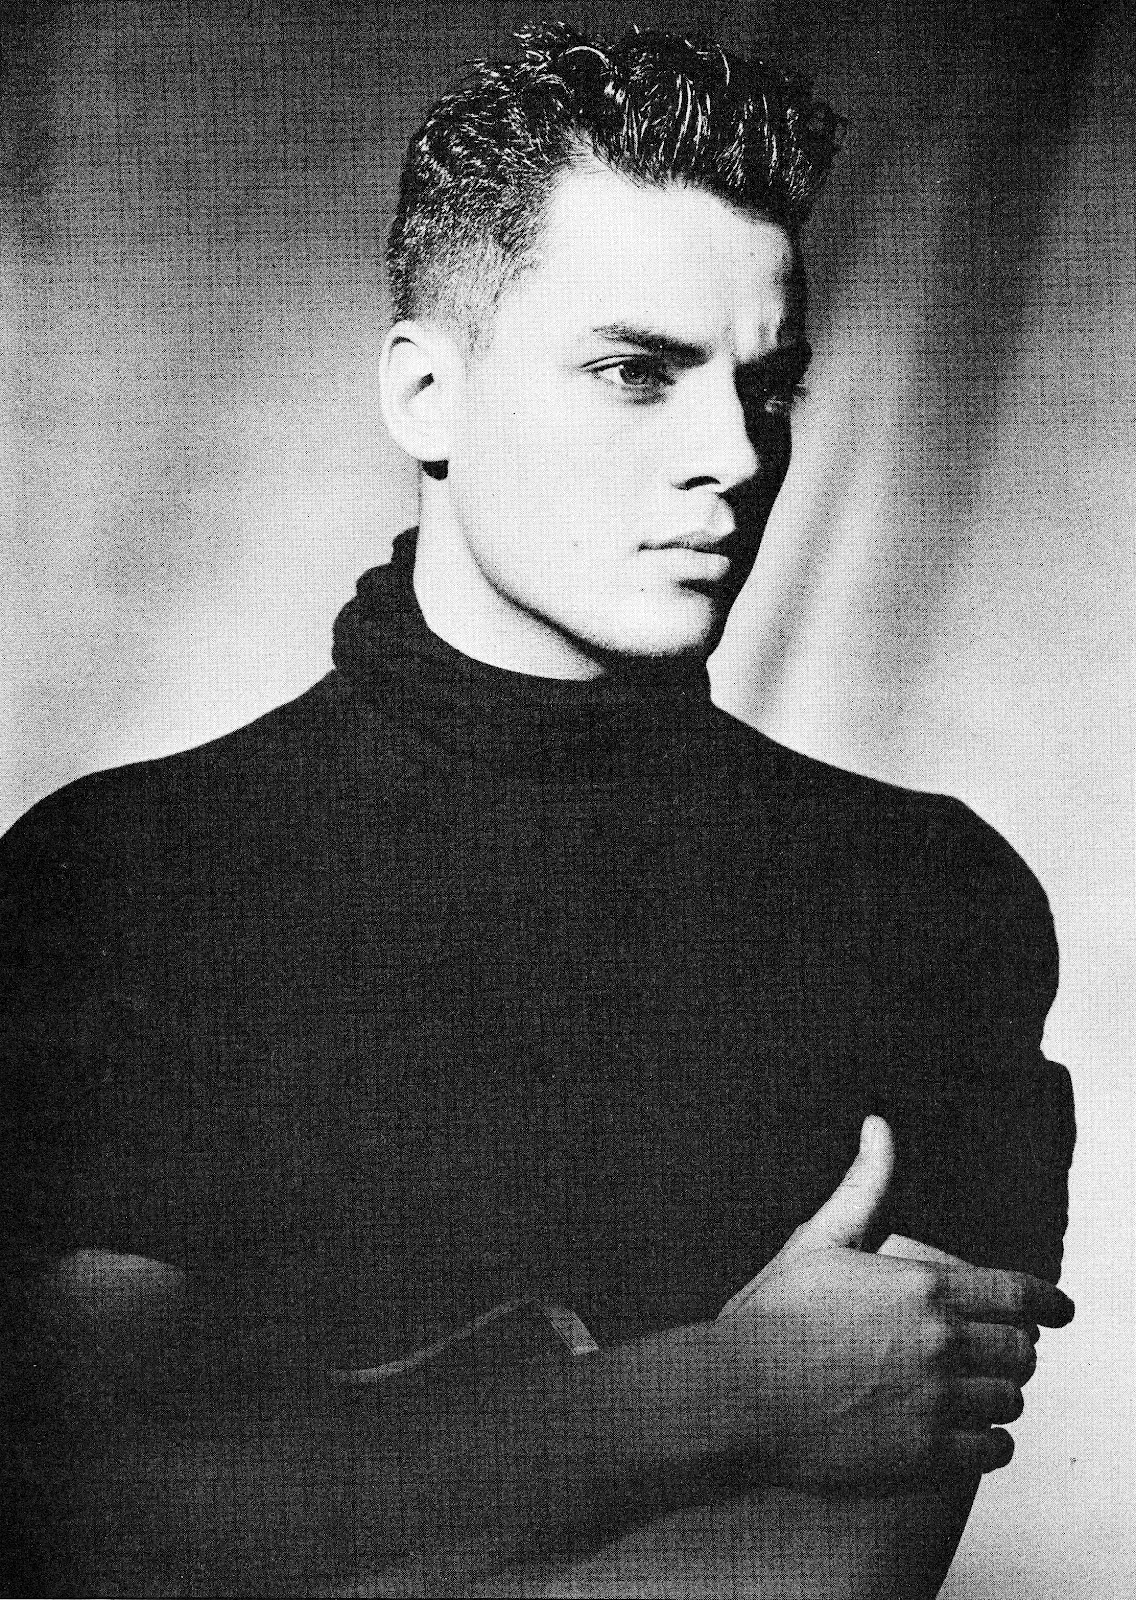 NICK KAMEN | Press Kits | Collectibles